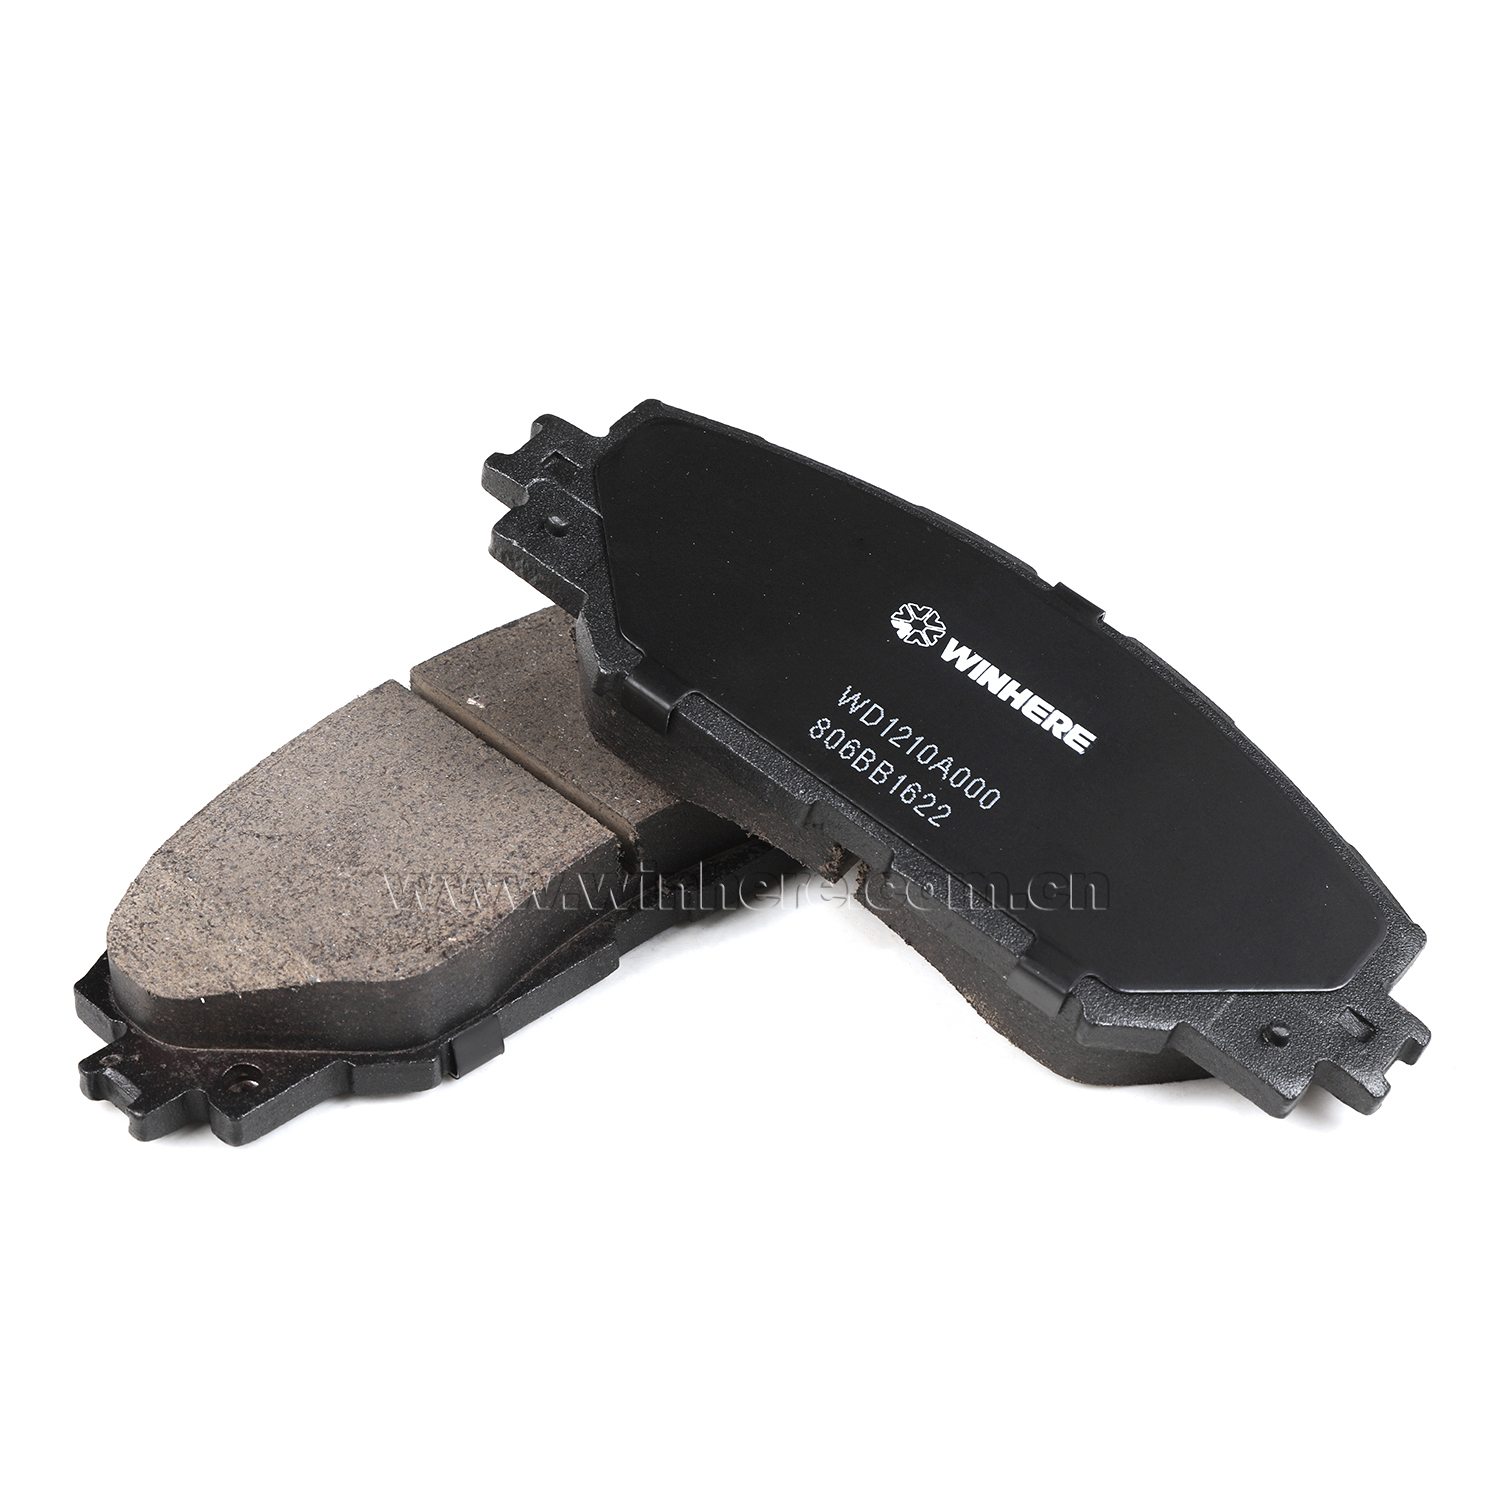 High Quality Friction Material Brake Pad Semi-metallic Low-steel Ceramic ECE R90